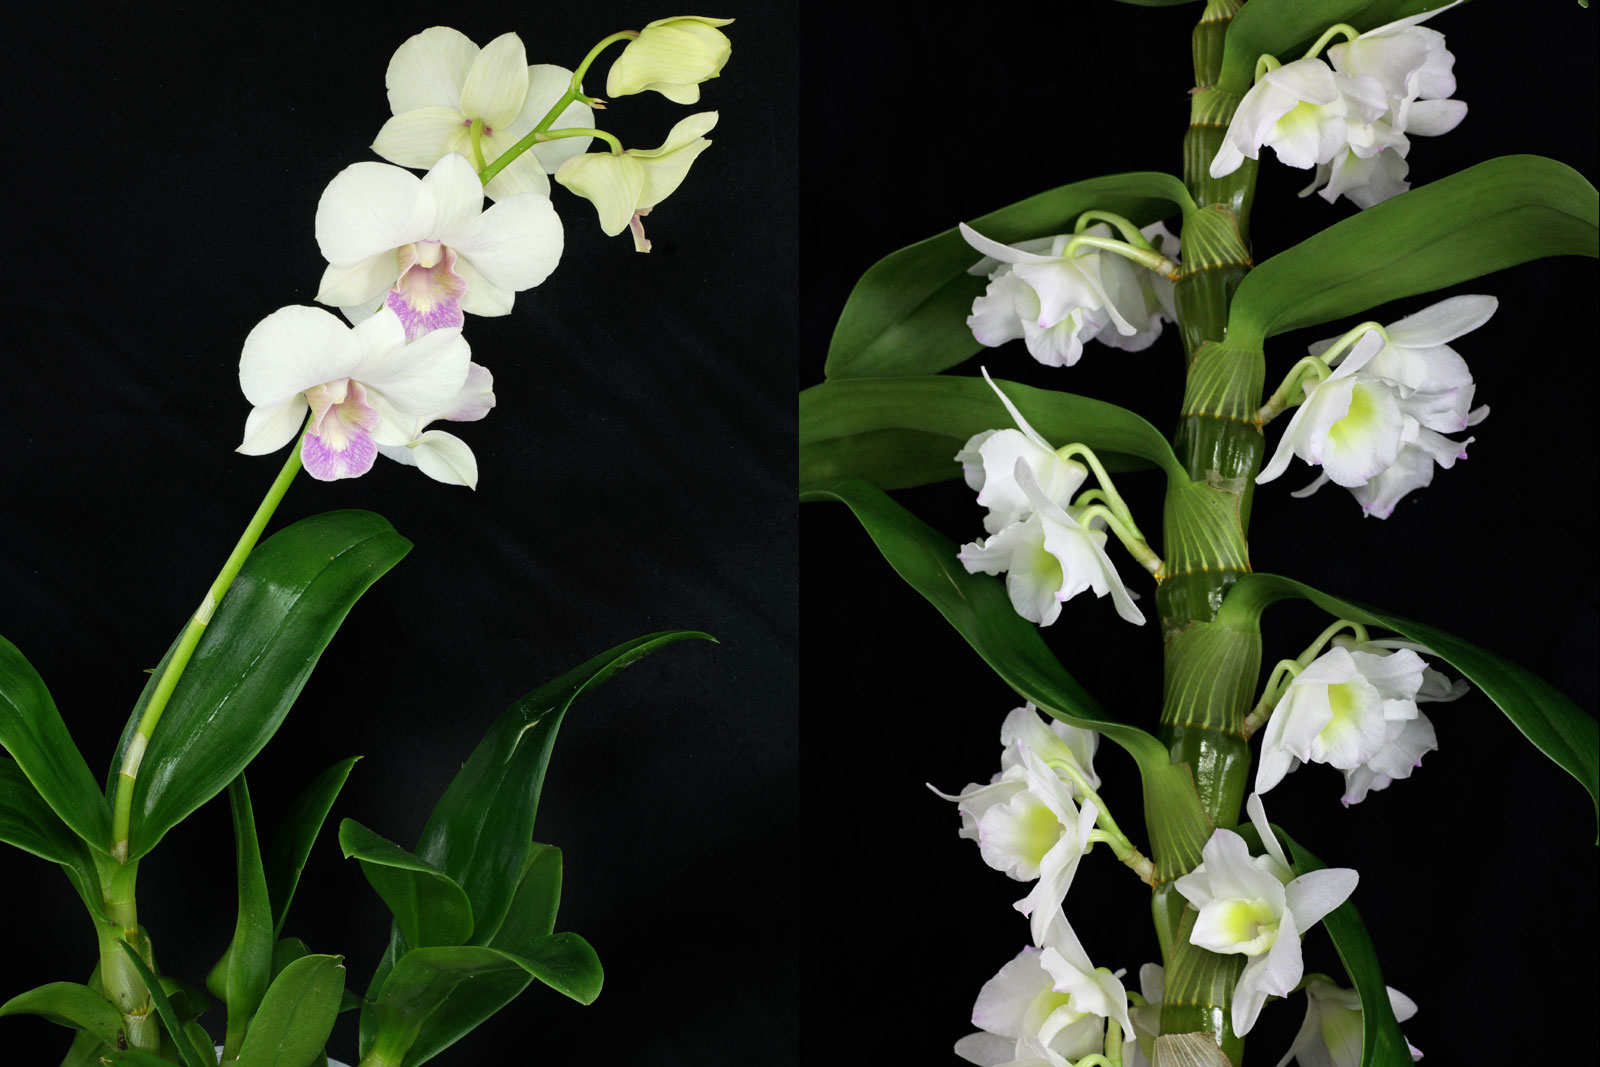 Dendrobium phalaenopsis and D. nobile